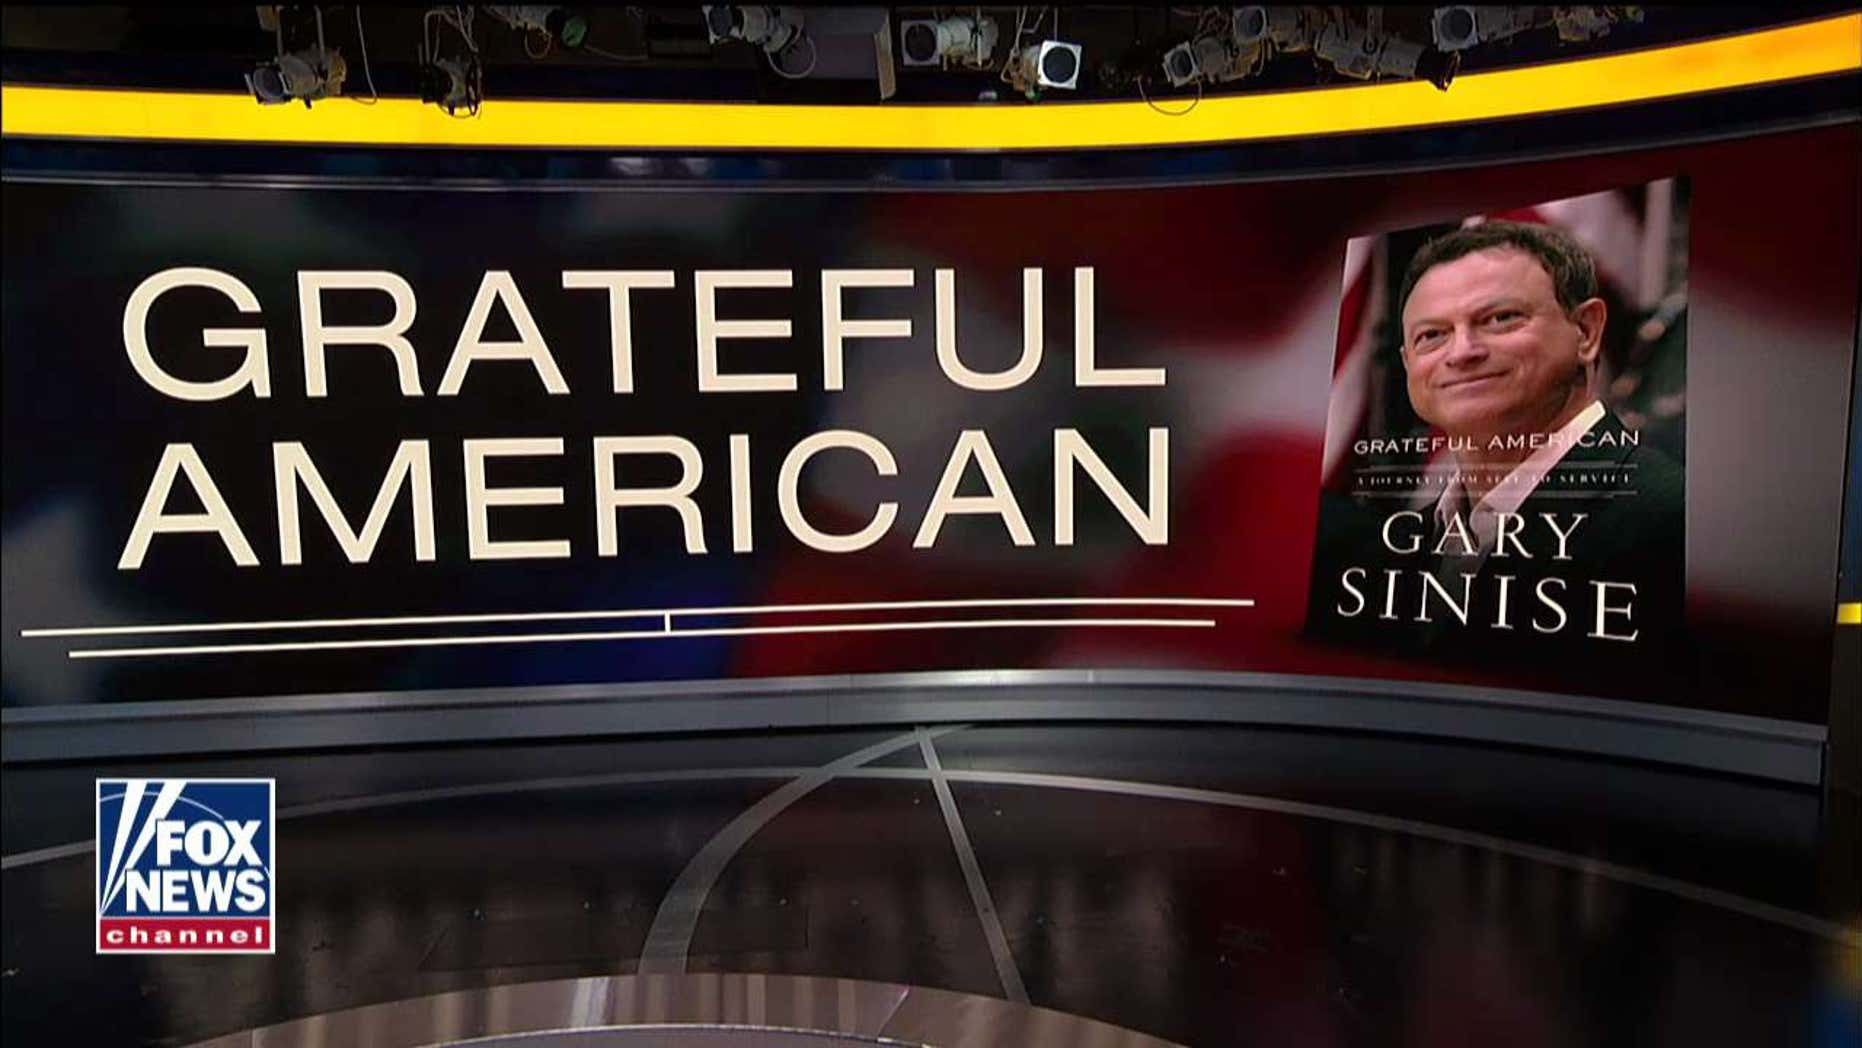 'Grateful American: A Journey from Self to Service' by Gary Sinise